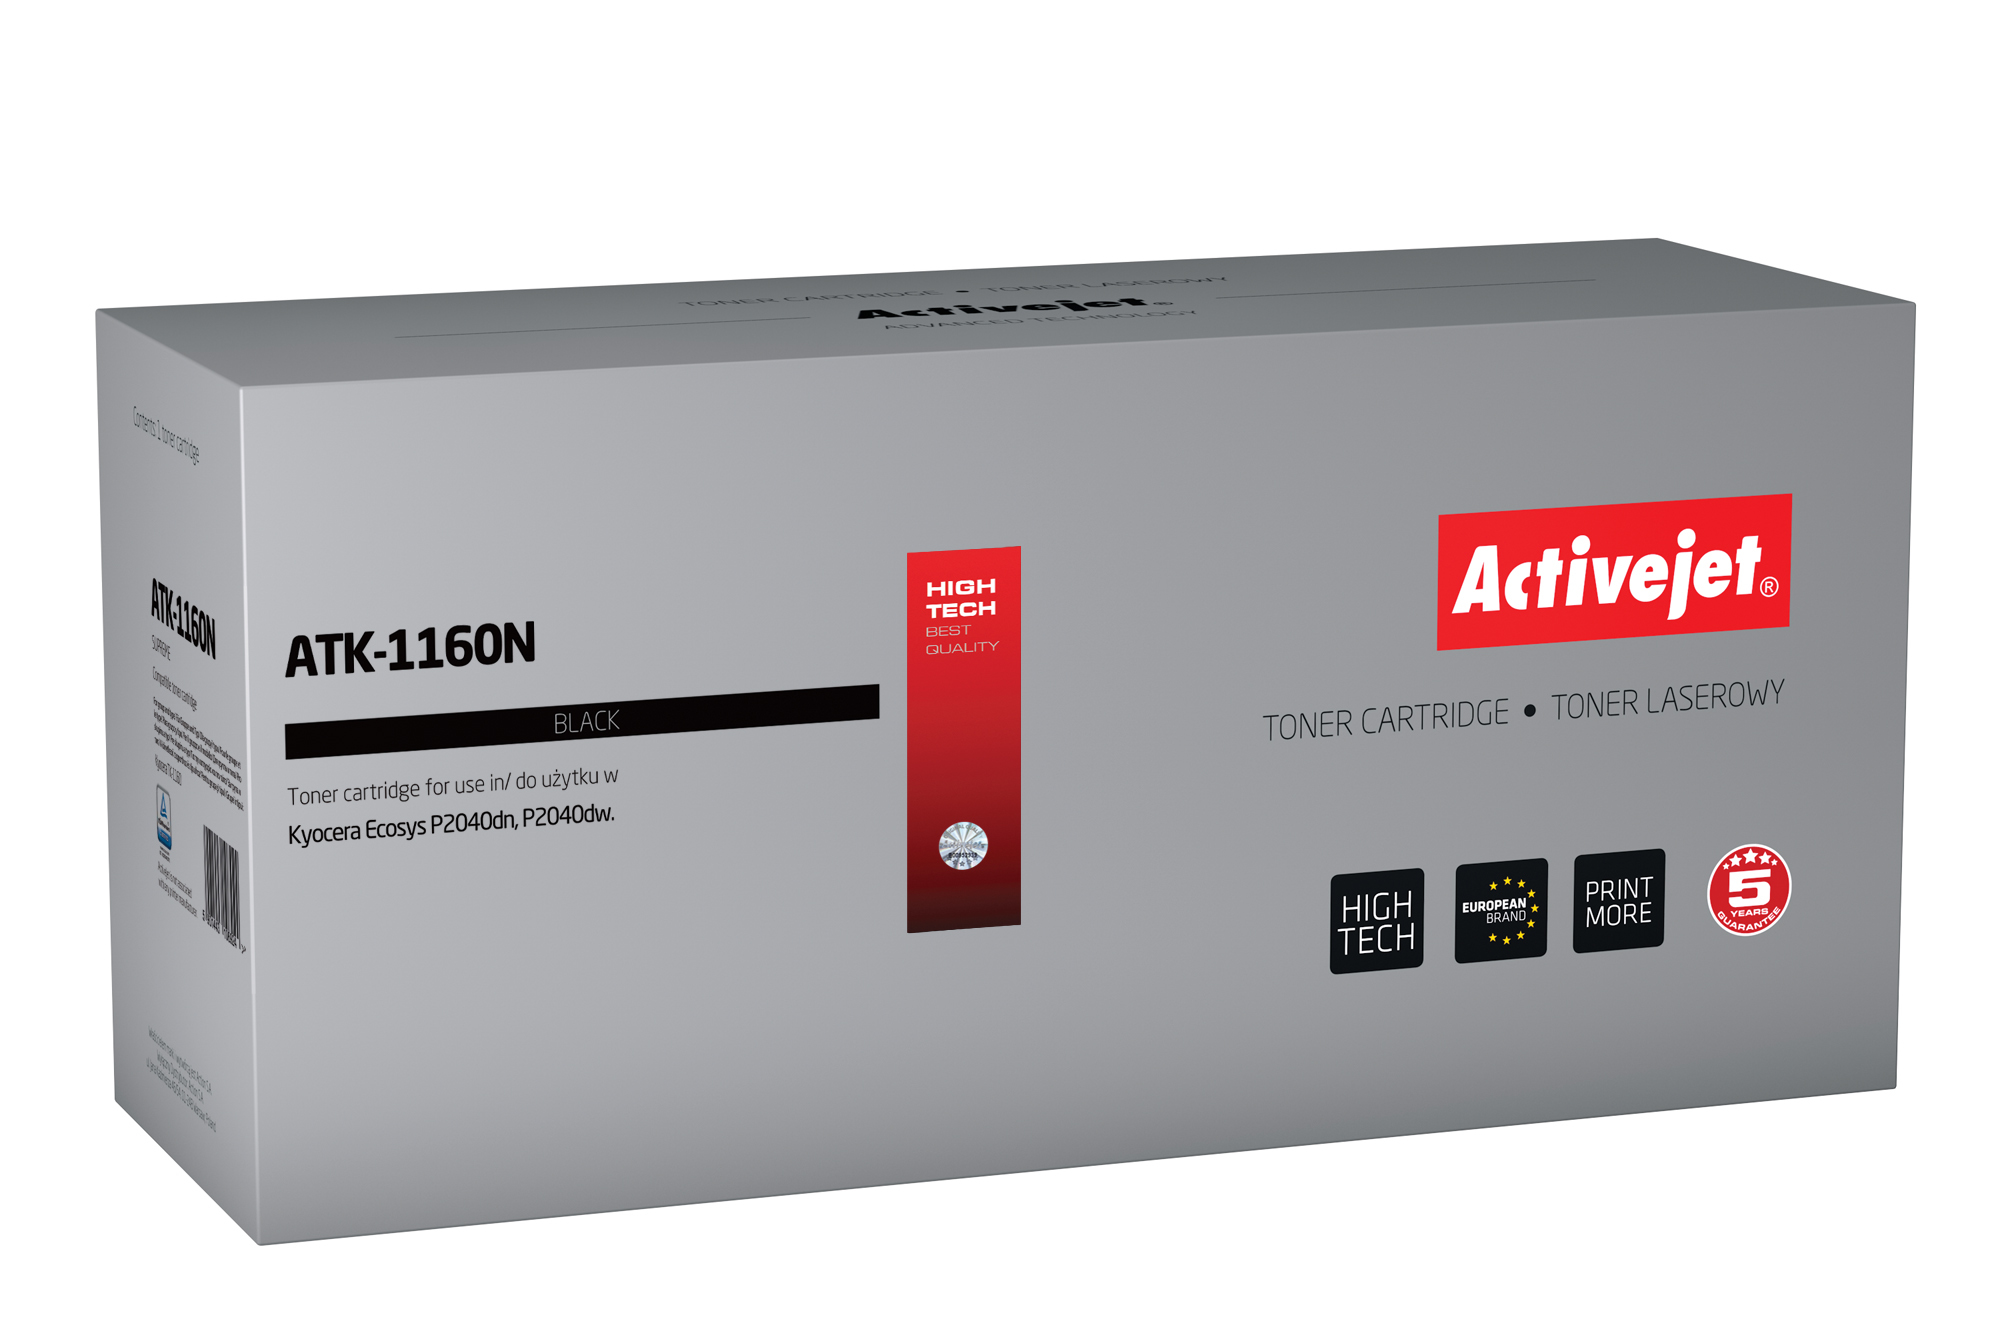 Activejet toner do Kyocera TK-1160 new ATK-1160N